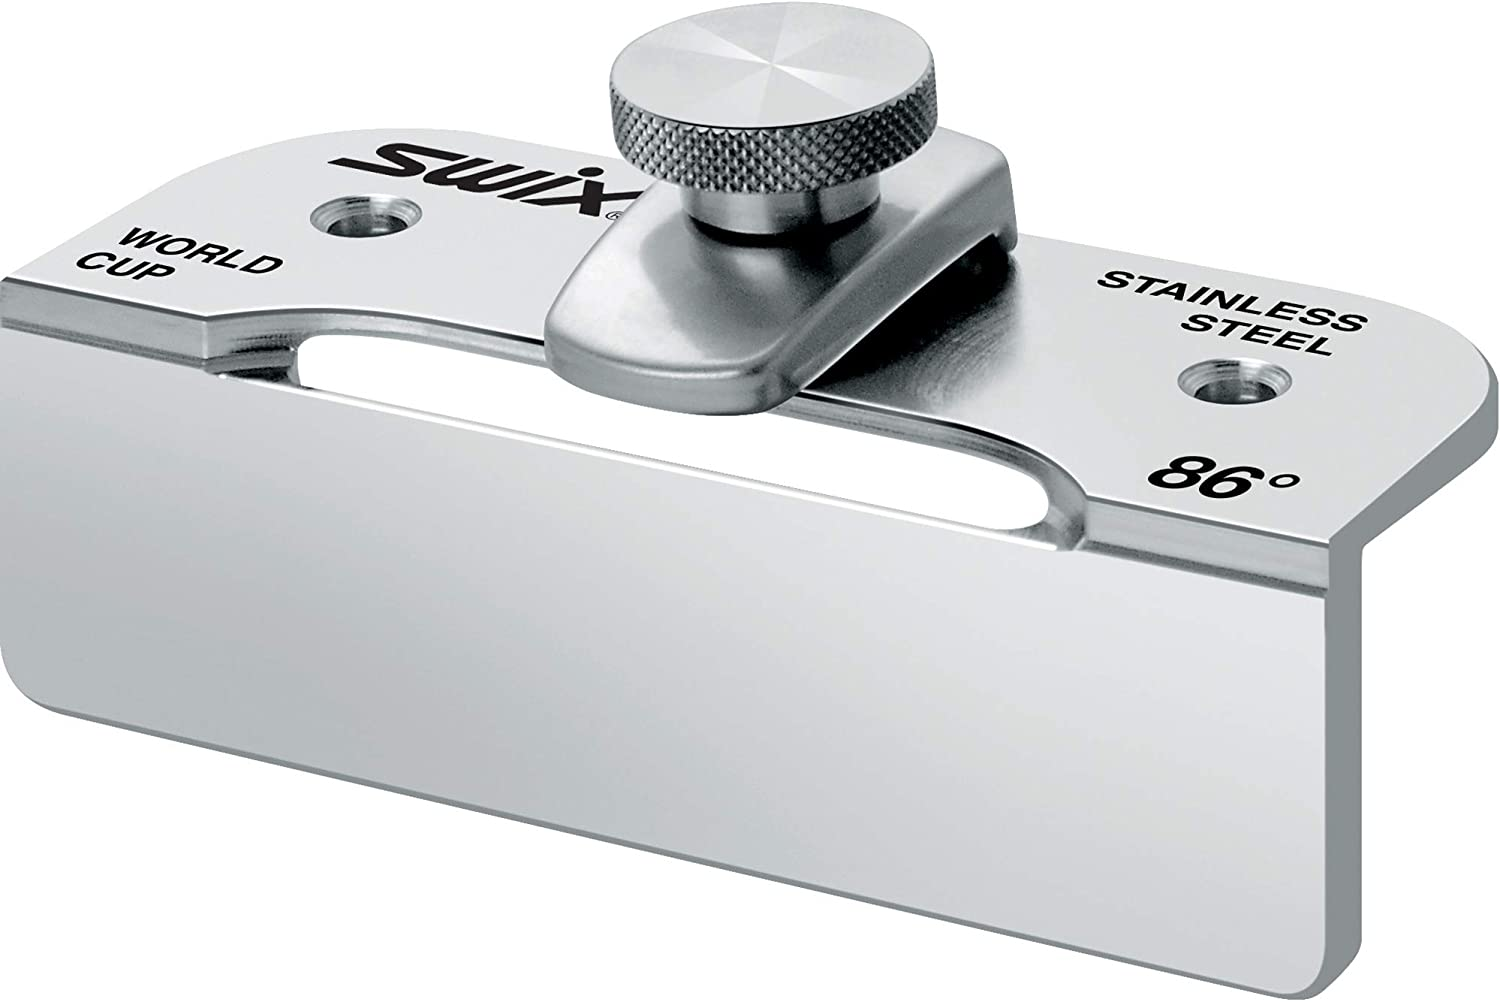 TA786 Challenge the lowest price of Japan ☆ Side File Guide WC 86d Pro Max 70% OFF